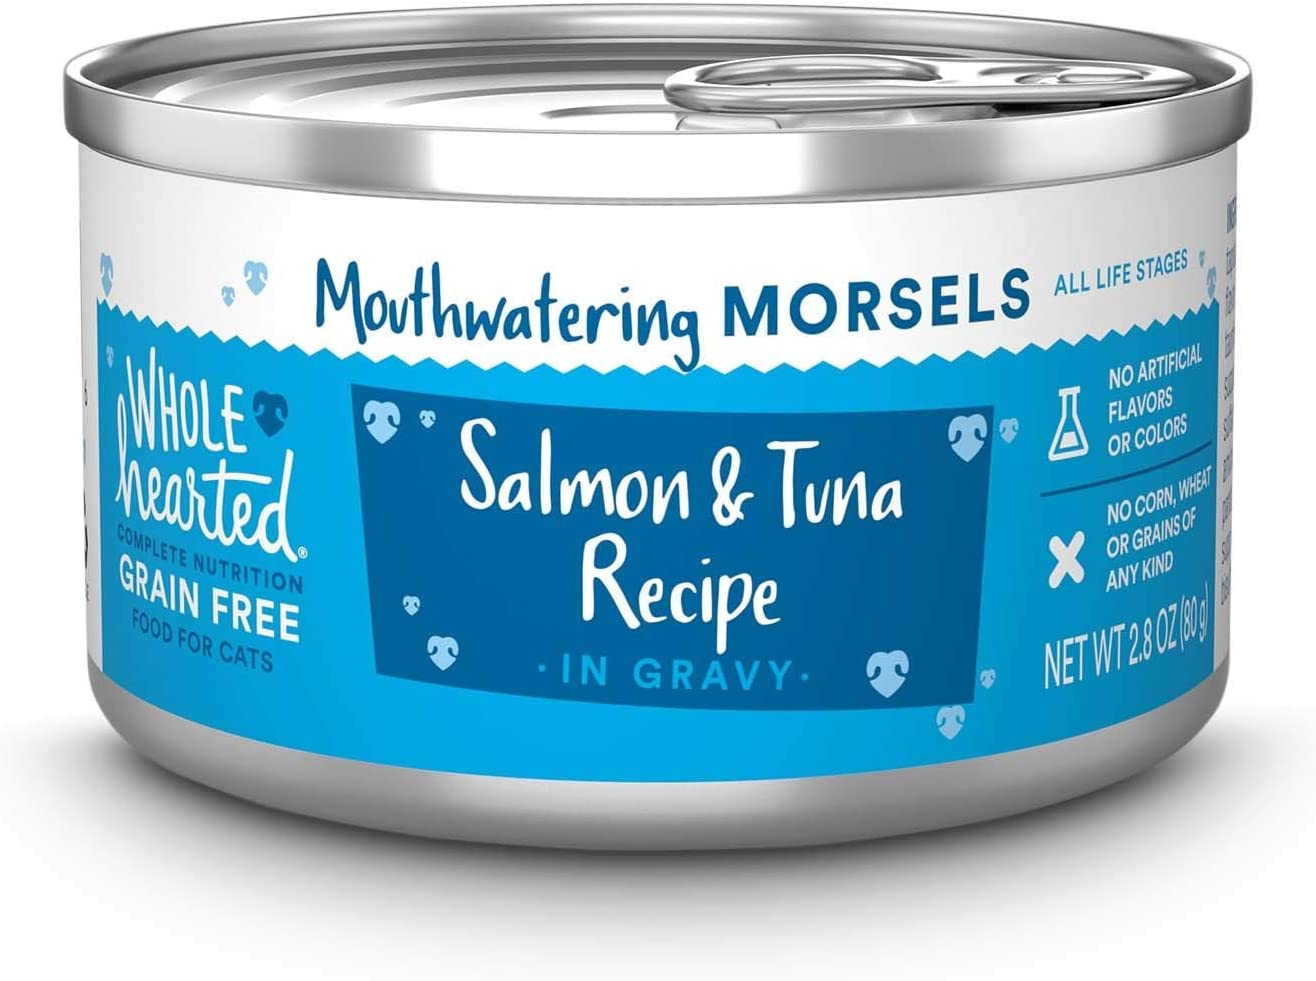 Petco Brand - WholeHearted All Life Stages Grain-Free Salmon Recipe Morsels in Gravy Wet Cat Food, 2.8 oz., Case of 12, 12 X 2.8 OZ